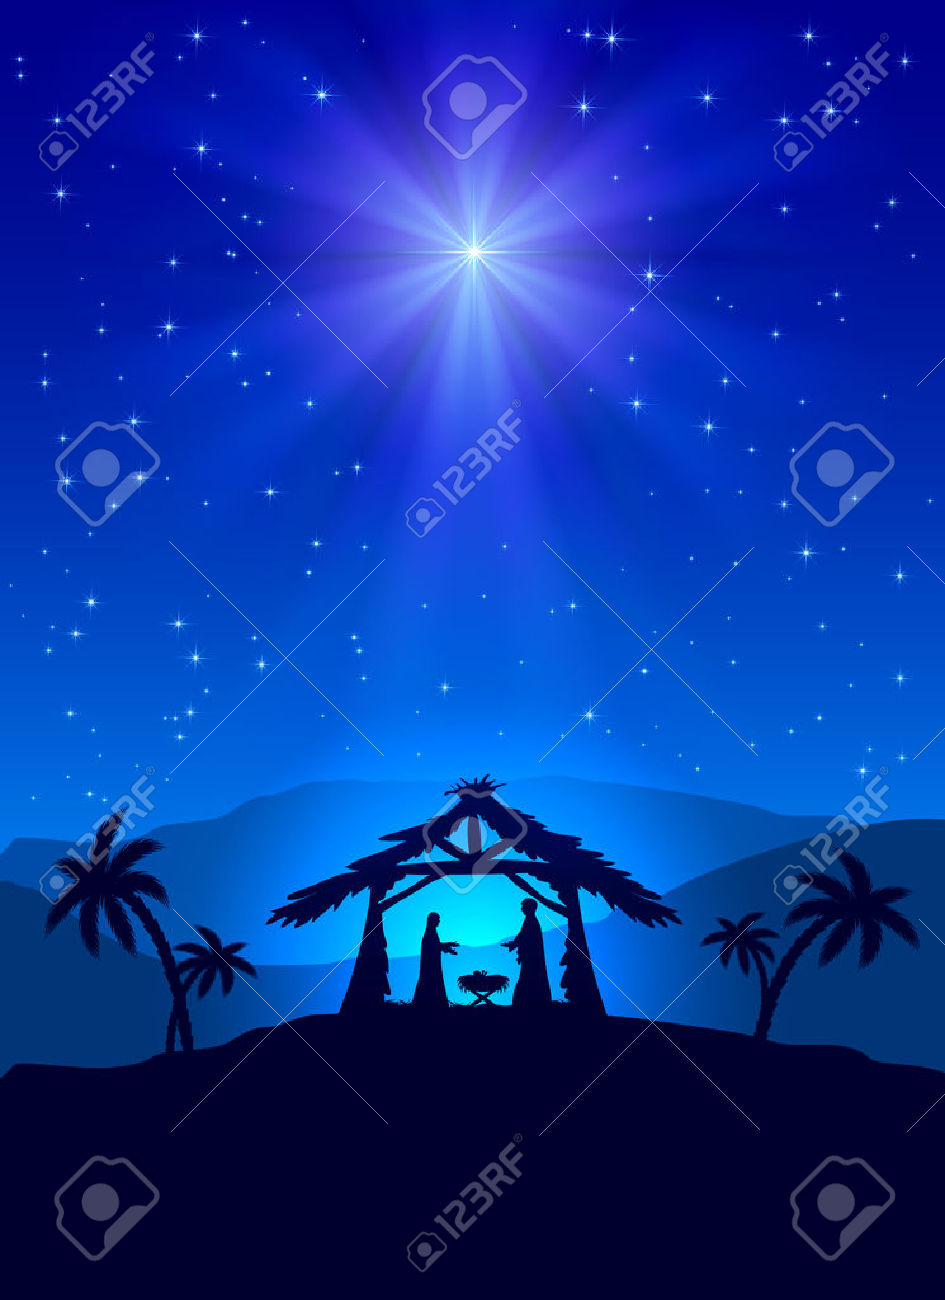 Christmas Night Scene Clipart 20 Free Cliparts Download